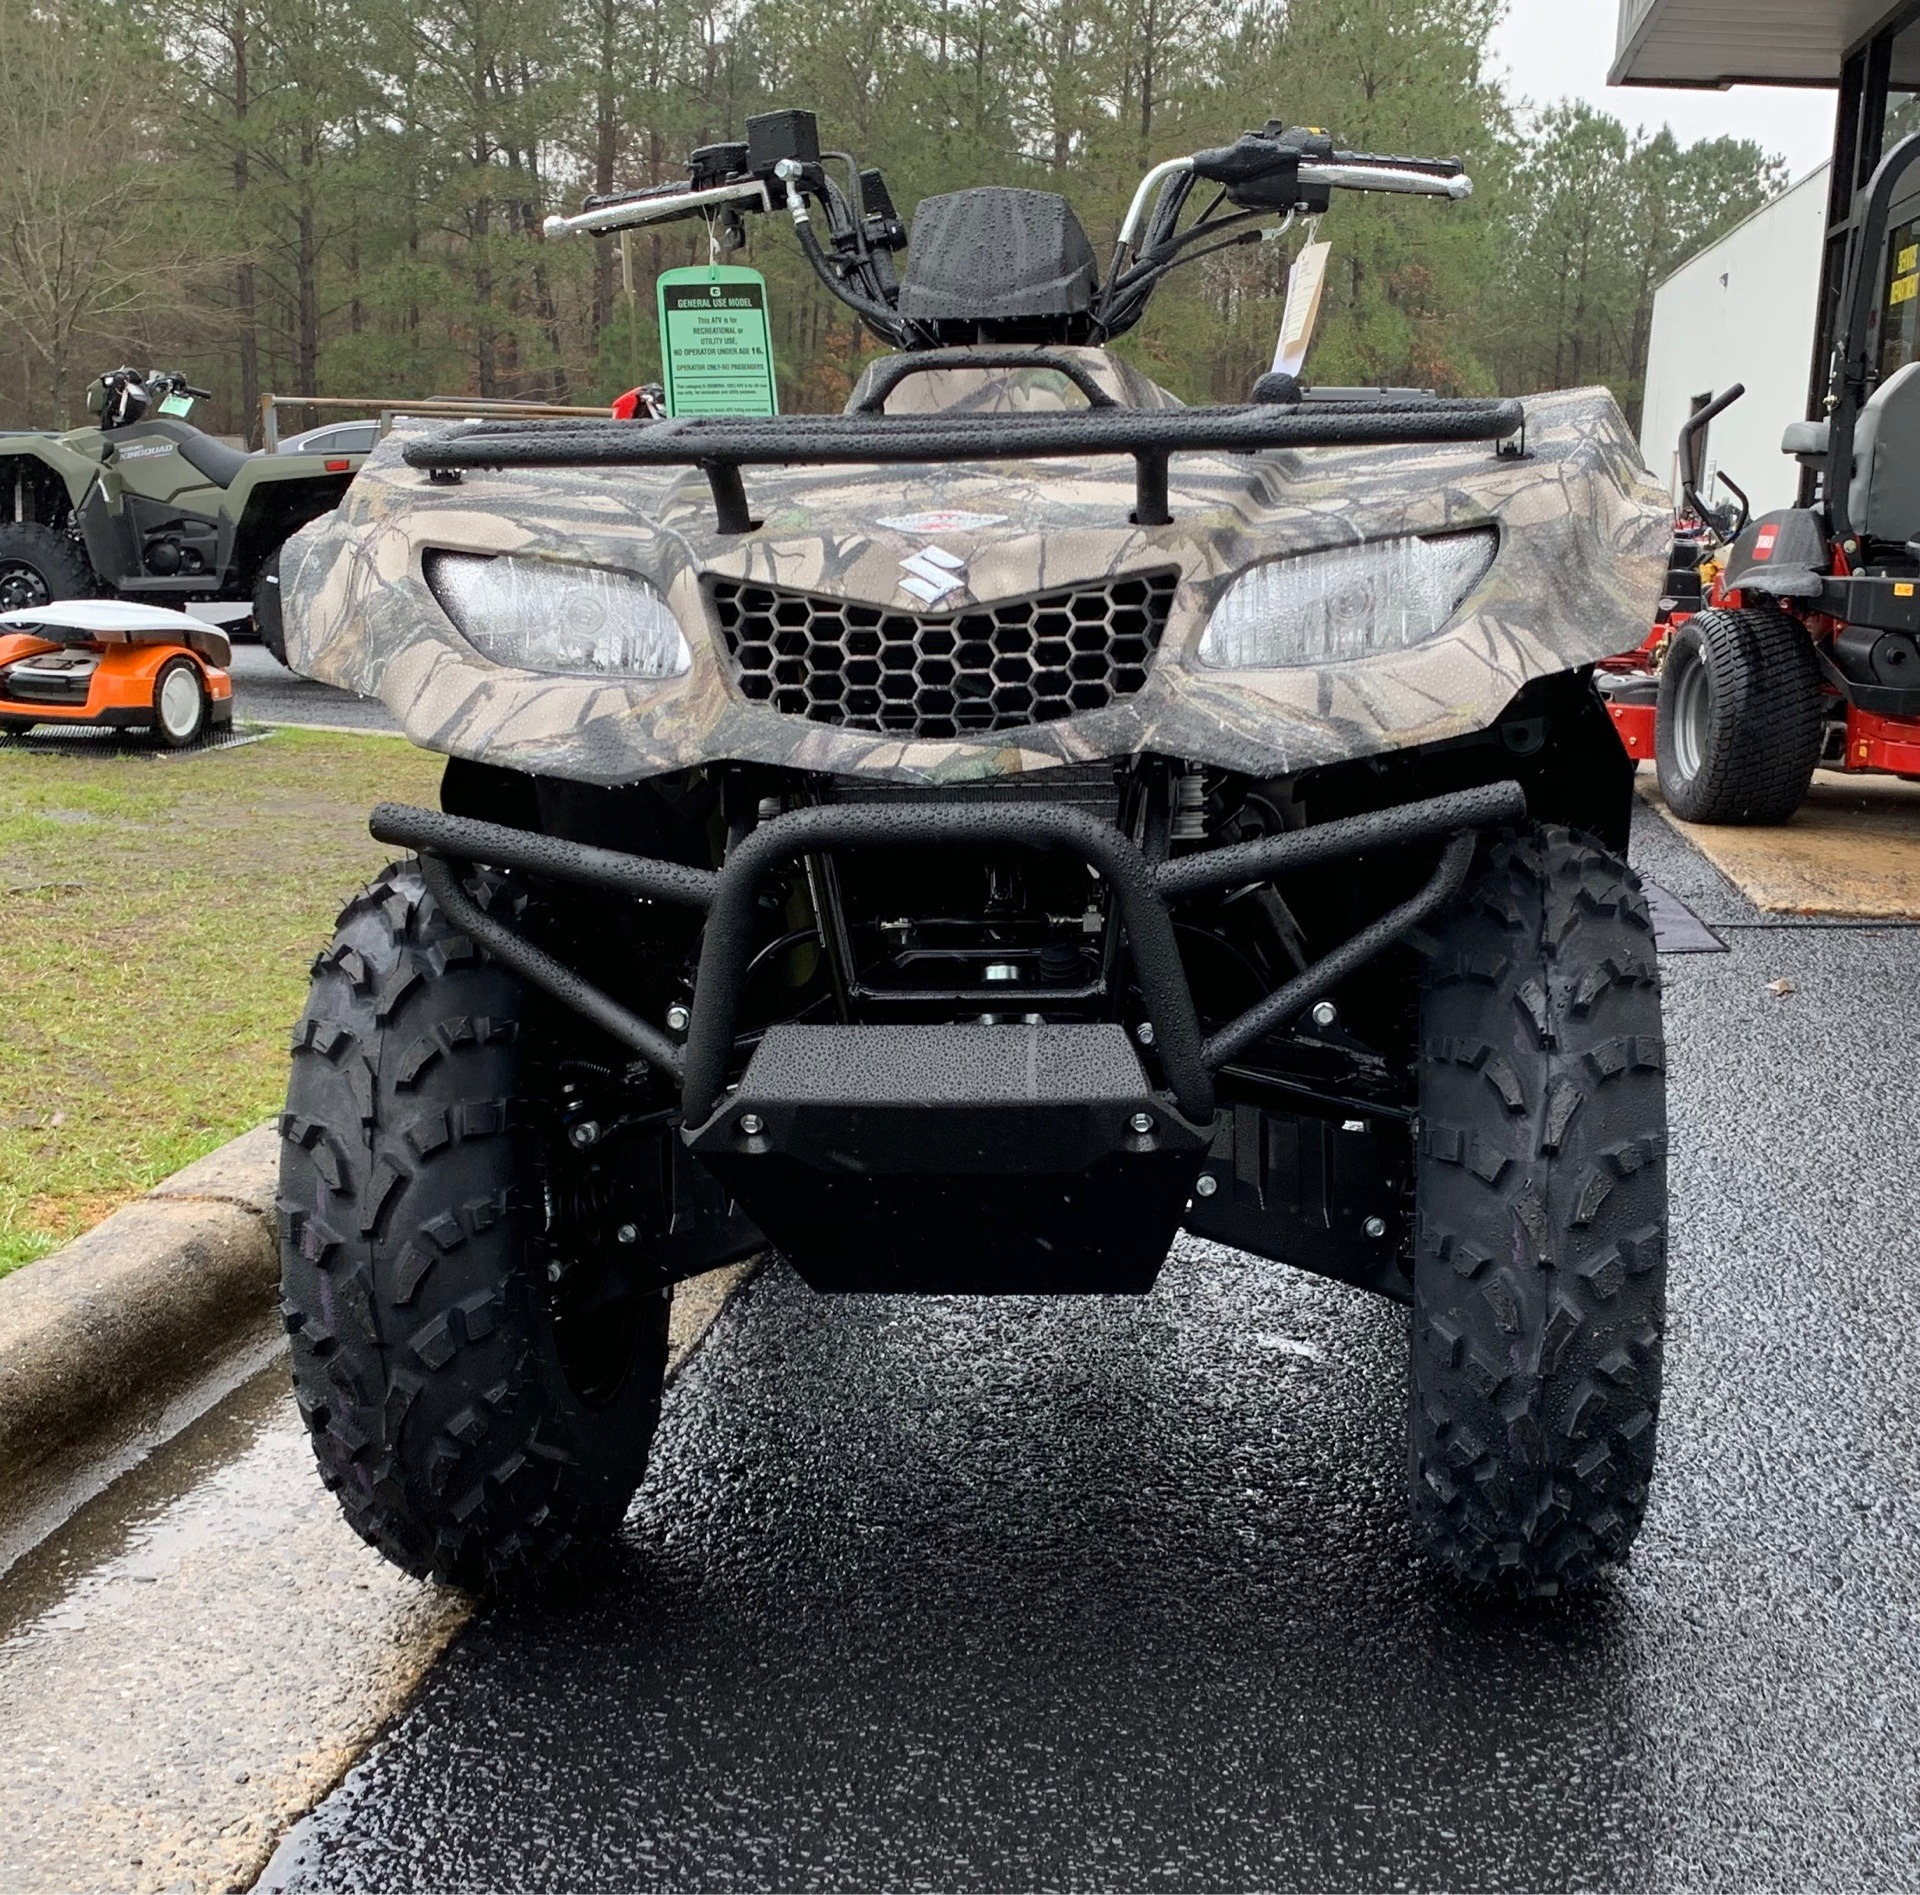 2019 Suzuki KingQuad 400ASi Camo in Greenville, North Carolina - Photo 5